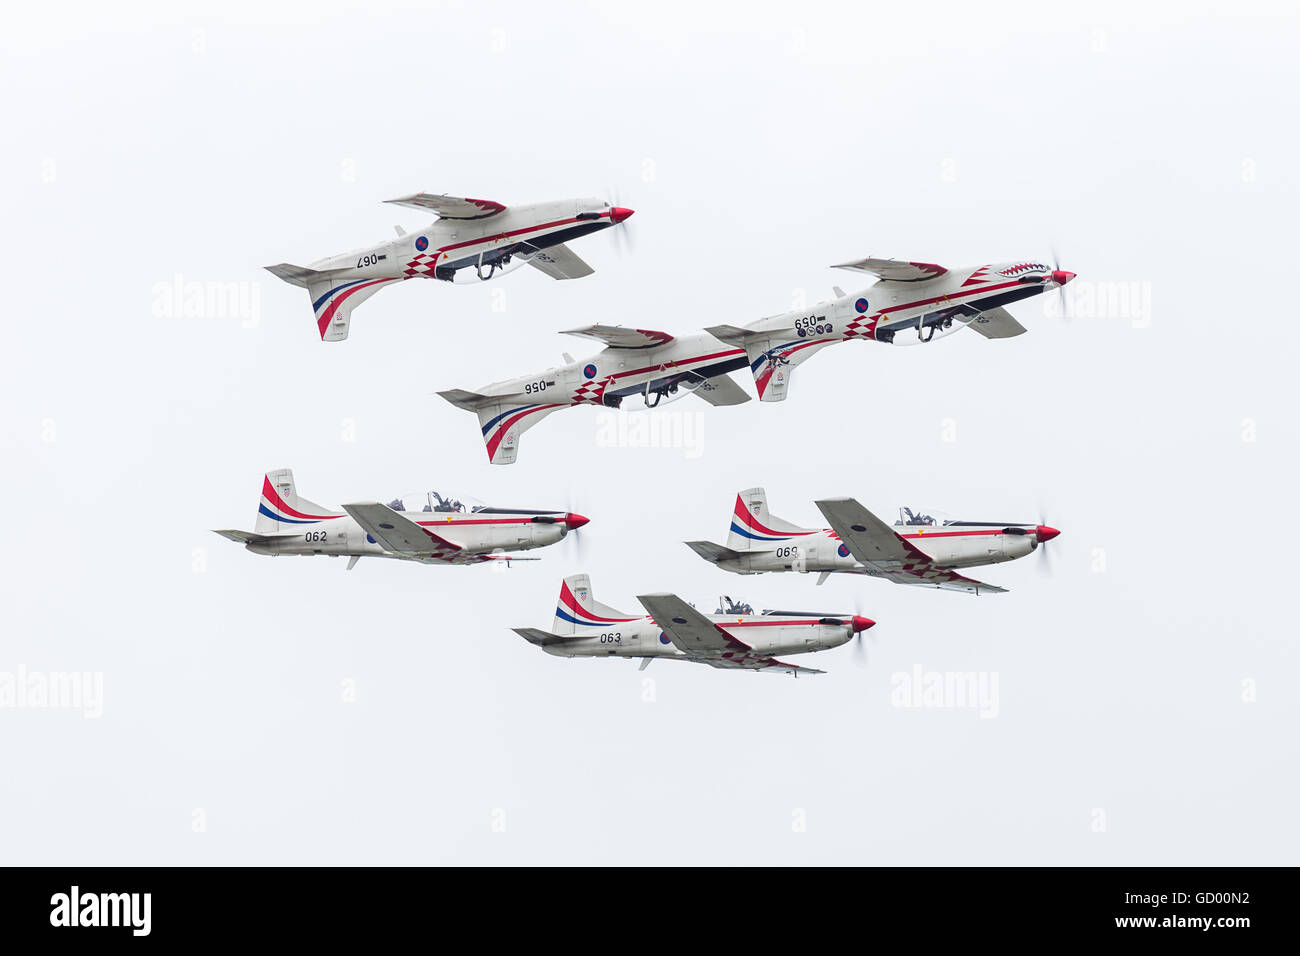 Wings of Storm of the Croatian Air Force display in formation pictured at the 2016 Royal International Air Tattoo. - Stock Image